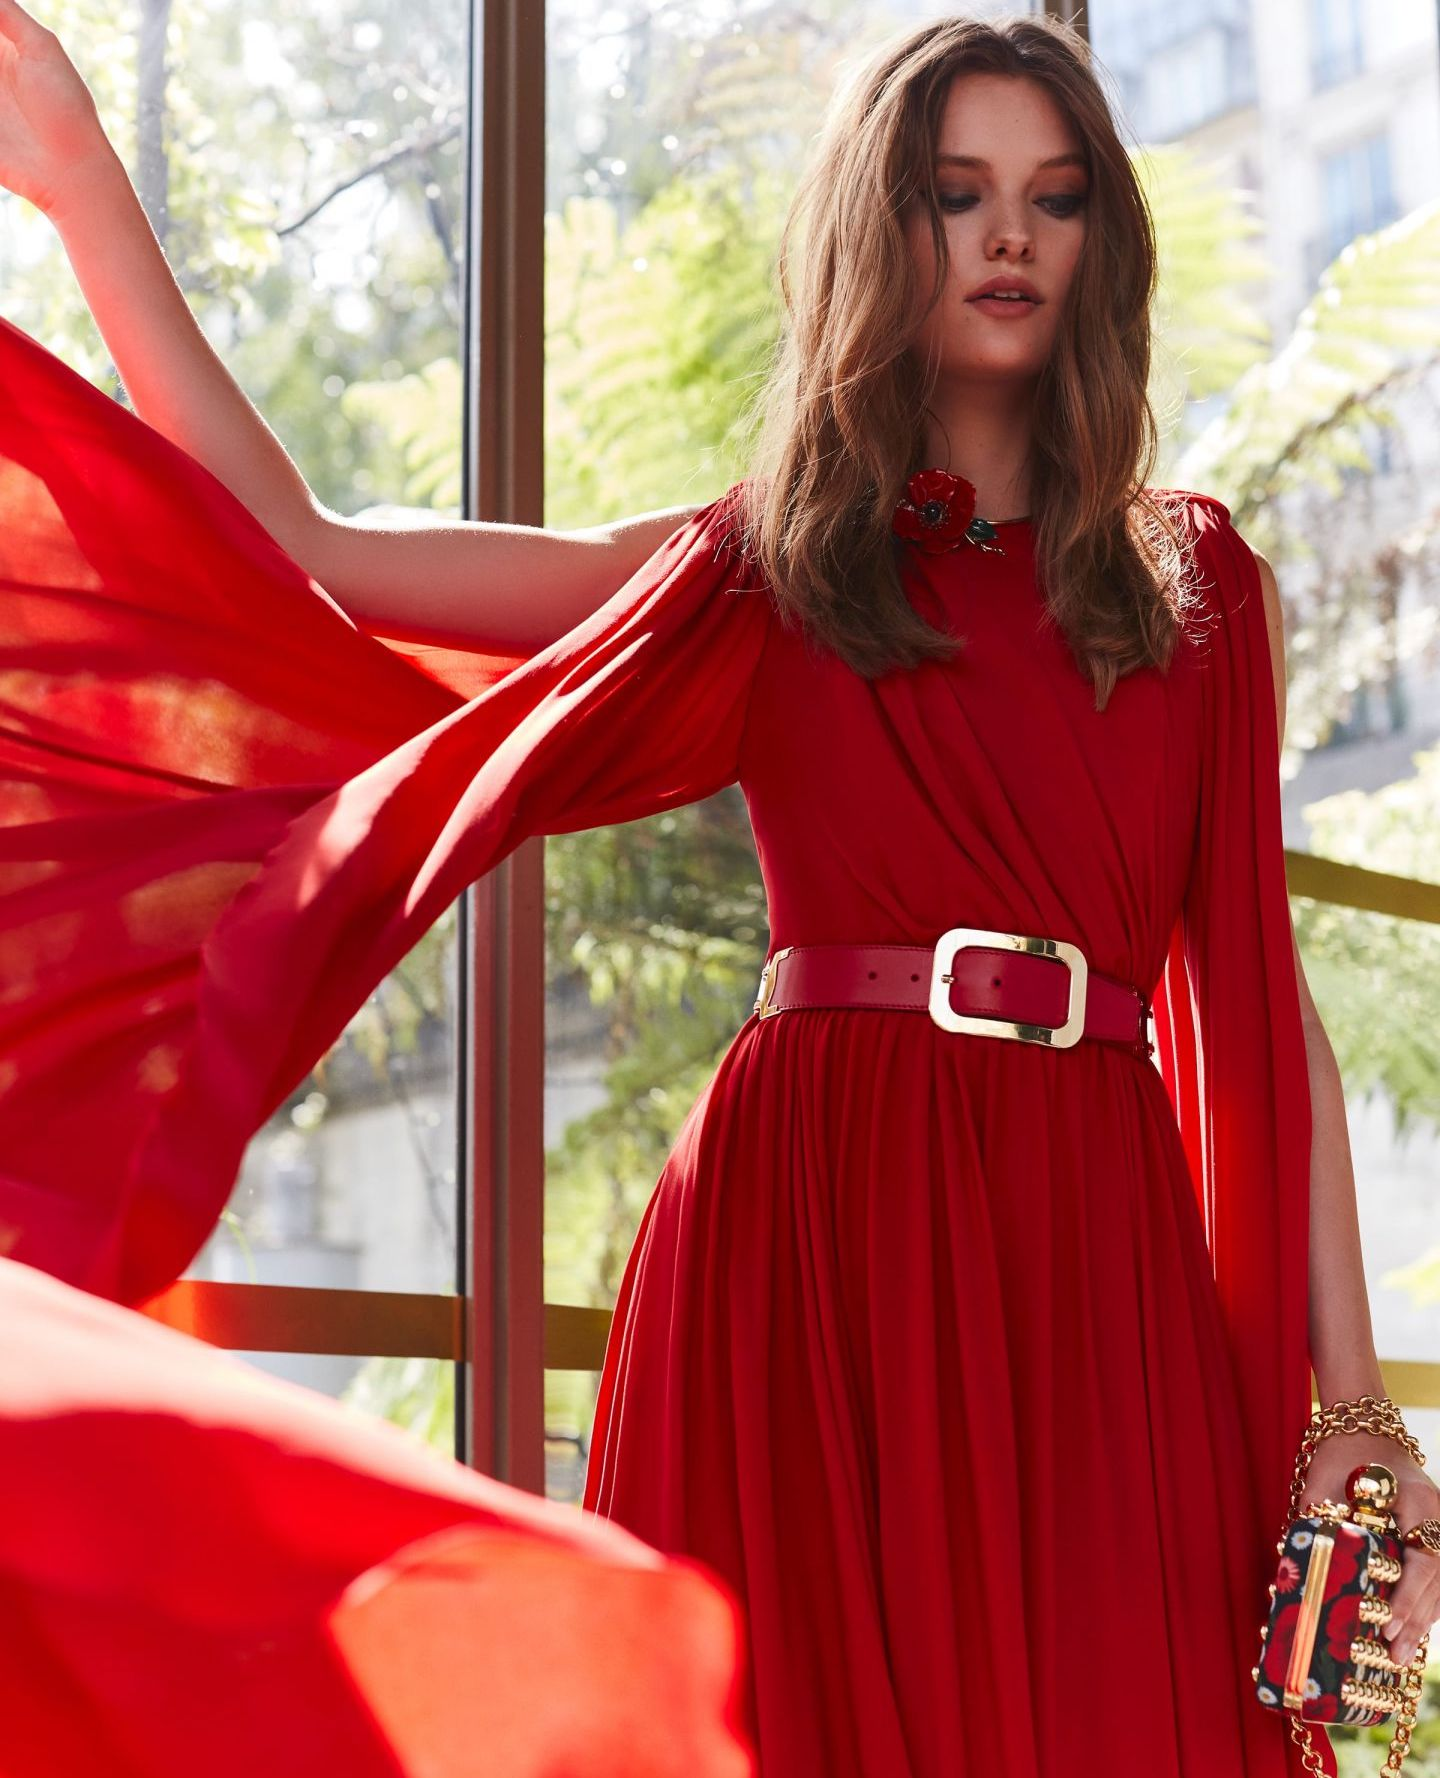 Elie Saab ready-to-wear resort 2019 collection